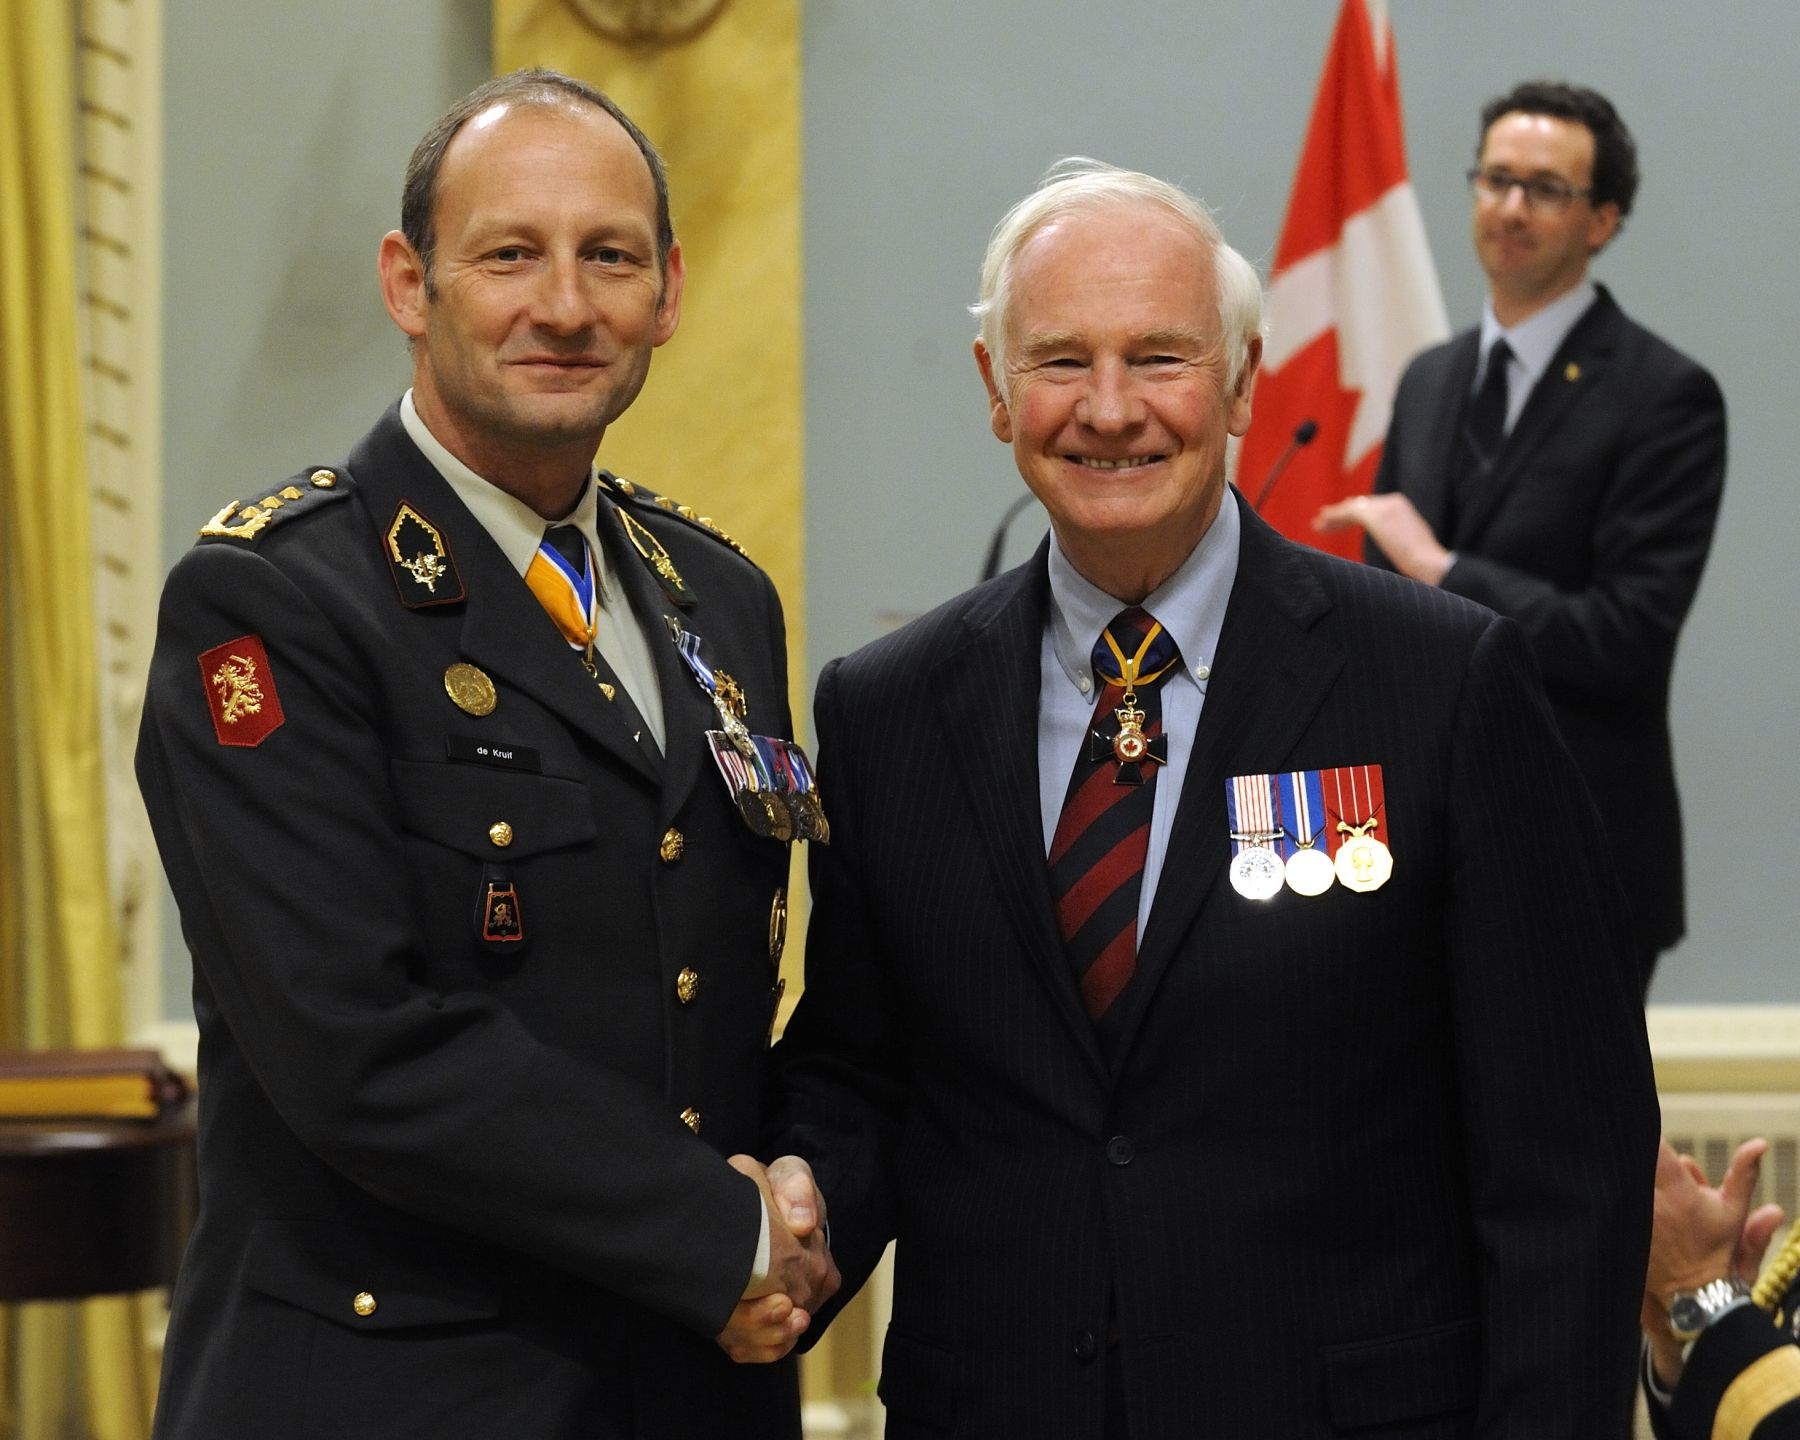 Major-General Mart C. de Kruif, M.S.M. (Royal Netherlands Army) received the Meritorious Service Medal (Military Division) from His Excellency. As commander of Regional Command (South) from November 2008 to November 2009, Major-General de Kruif consistently acknowledged and promoted Canada's contribution to allied military efforts in Afghanistan. With compassion and respect for Canadian soldiers, he ensured their welfare and security, and provided outstanding support to the command teams of two Canadian task forces. Demonstrating world-class leadership, unwavering dedication and keen operational understanding, Major-General de Kruif's command of Canadian soldiers was exemplary and provided great benefit to Canada.